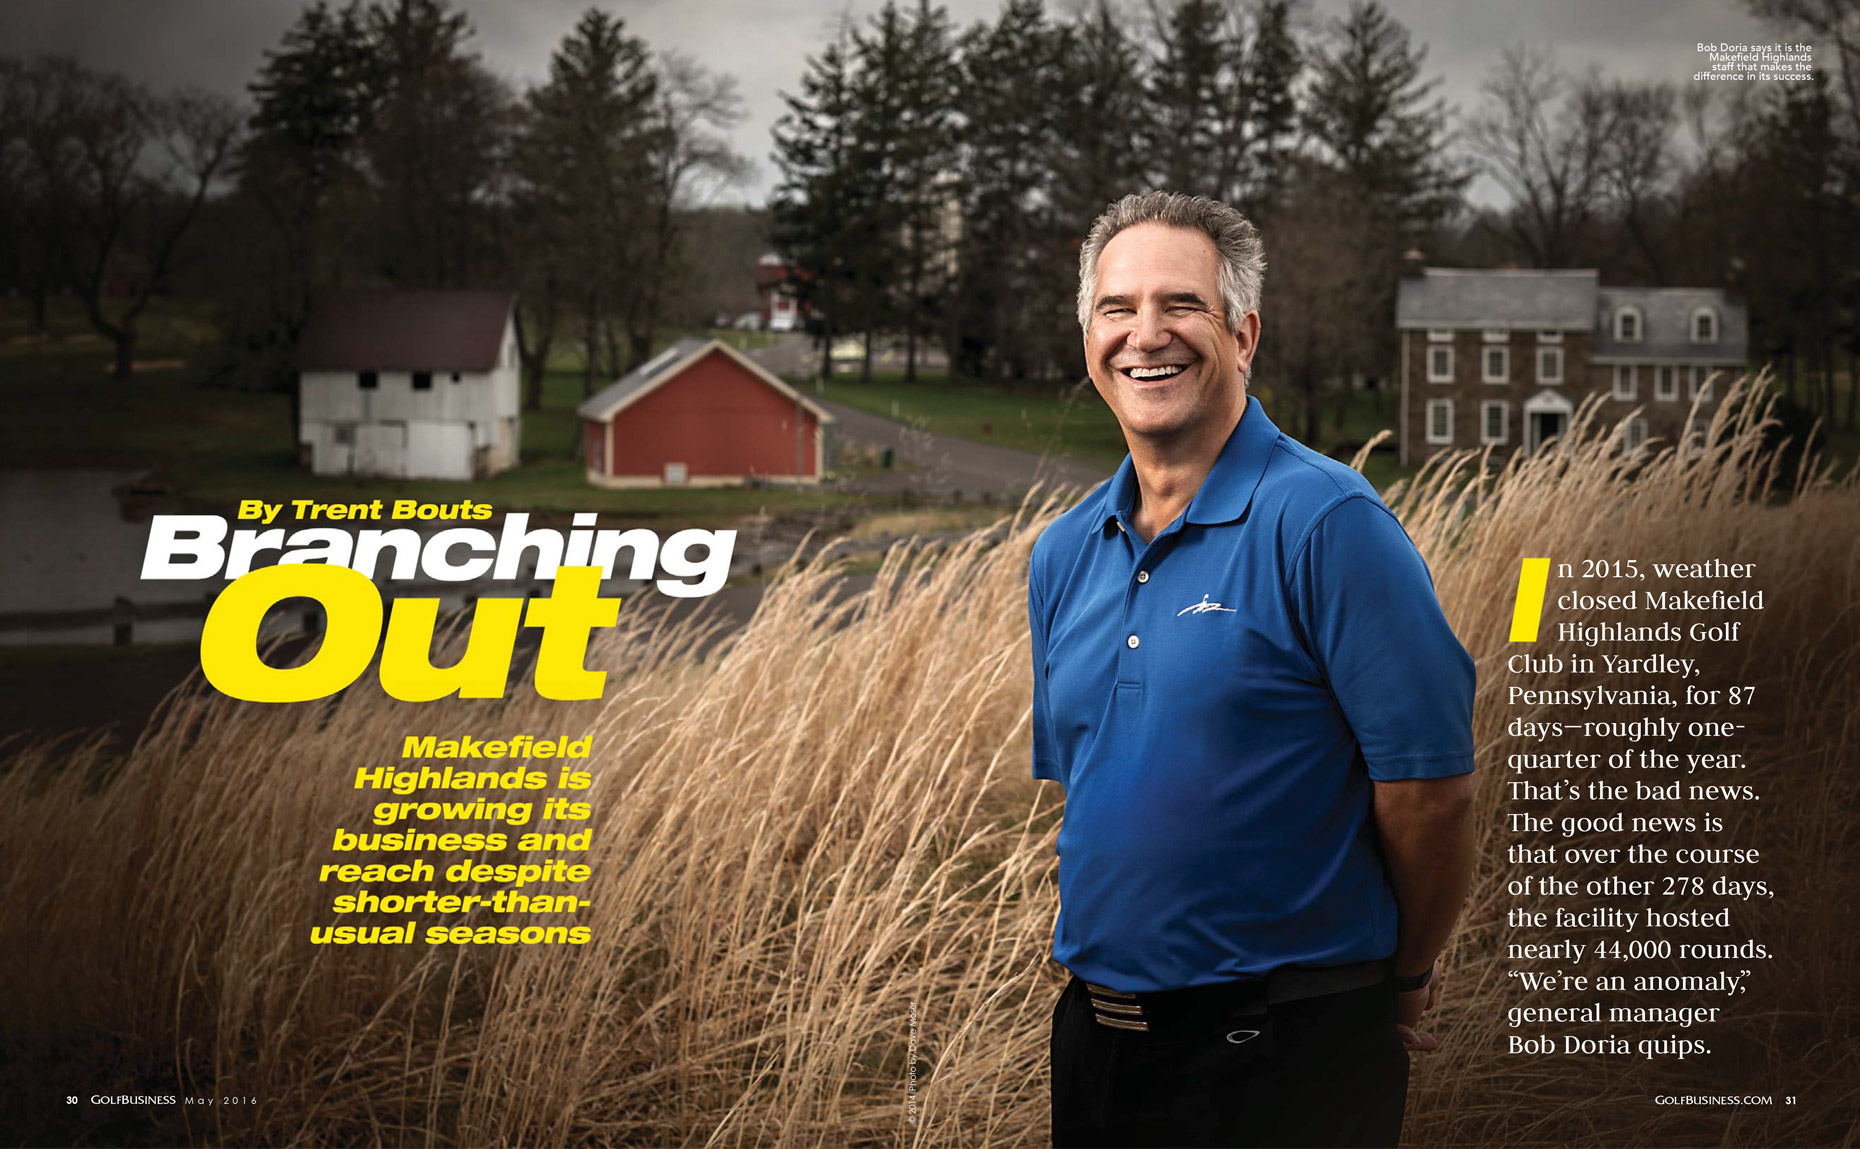 editorial-golf-business-makefield-highlands-article